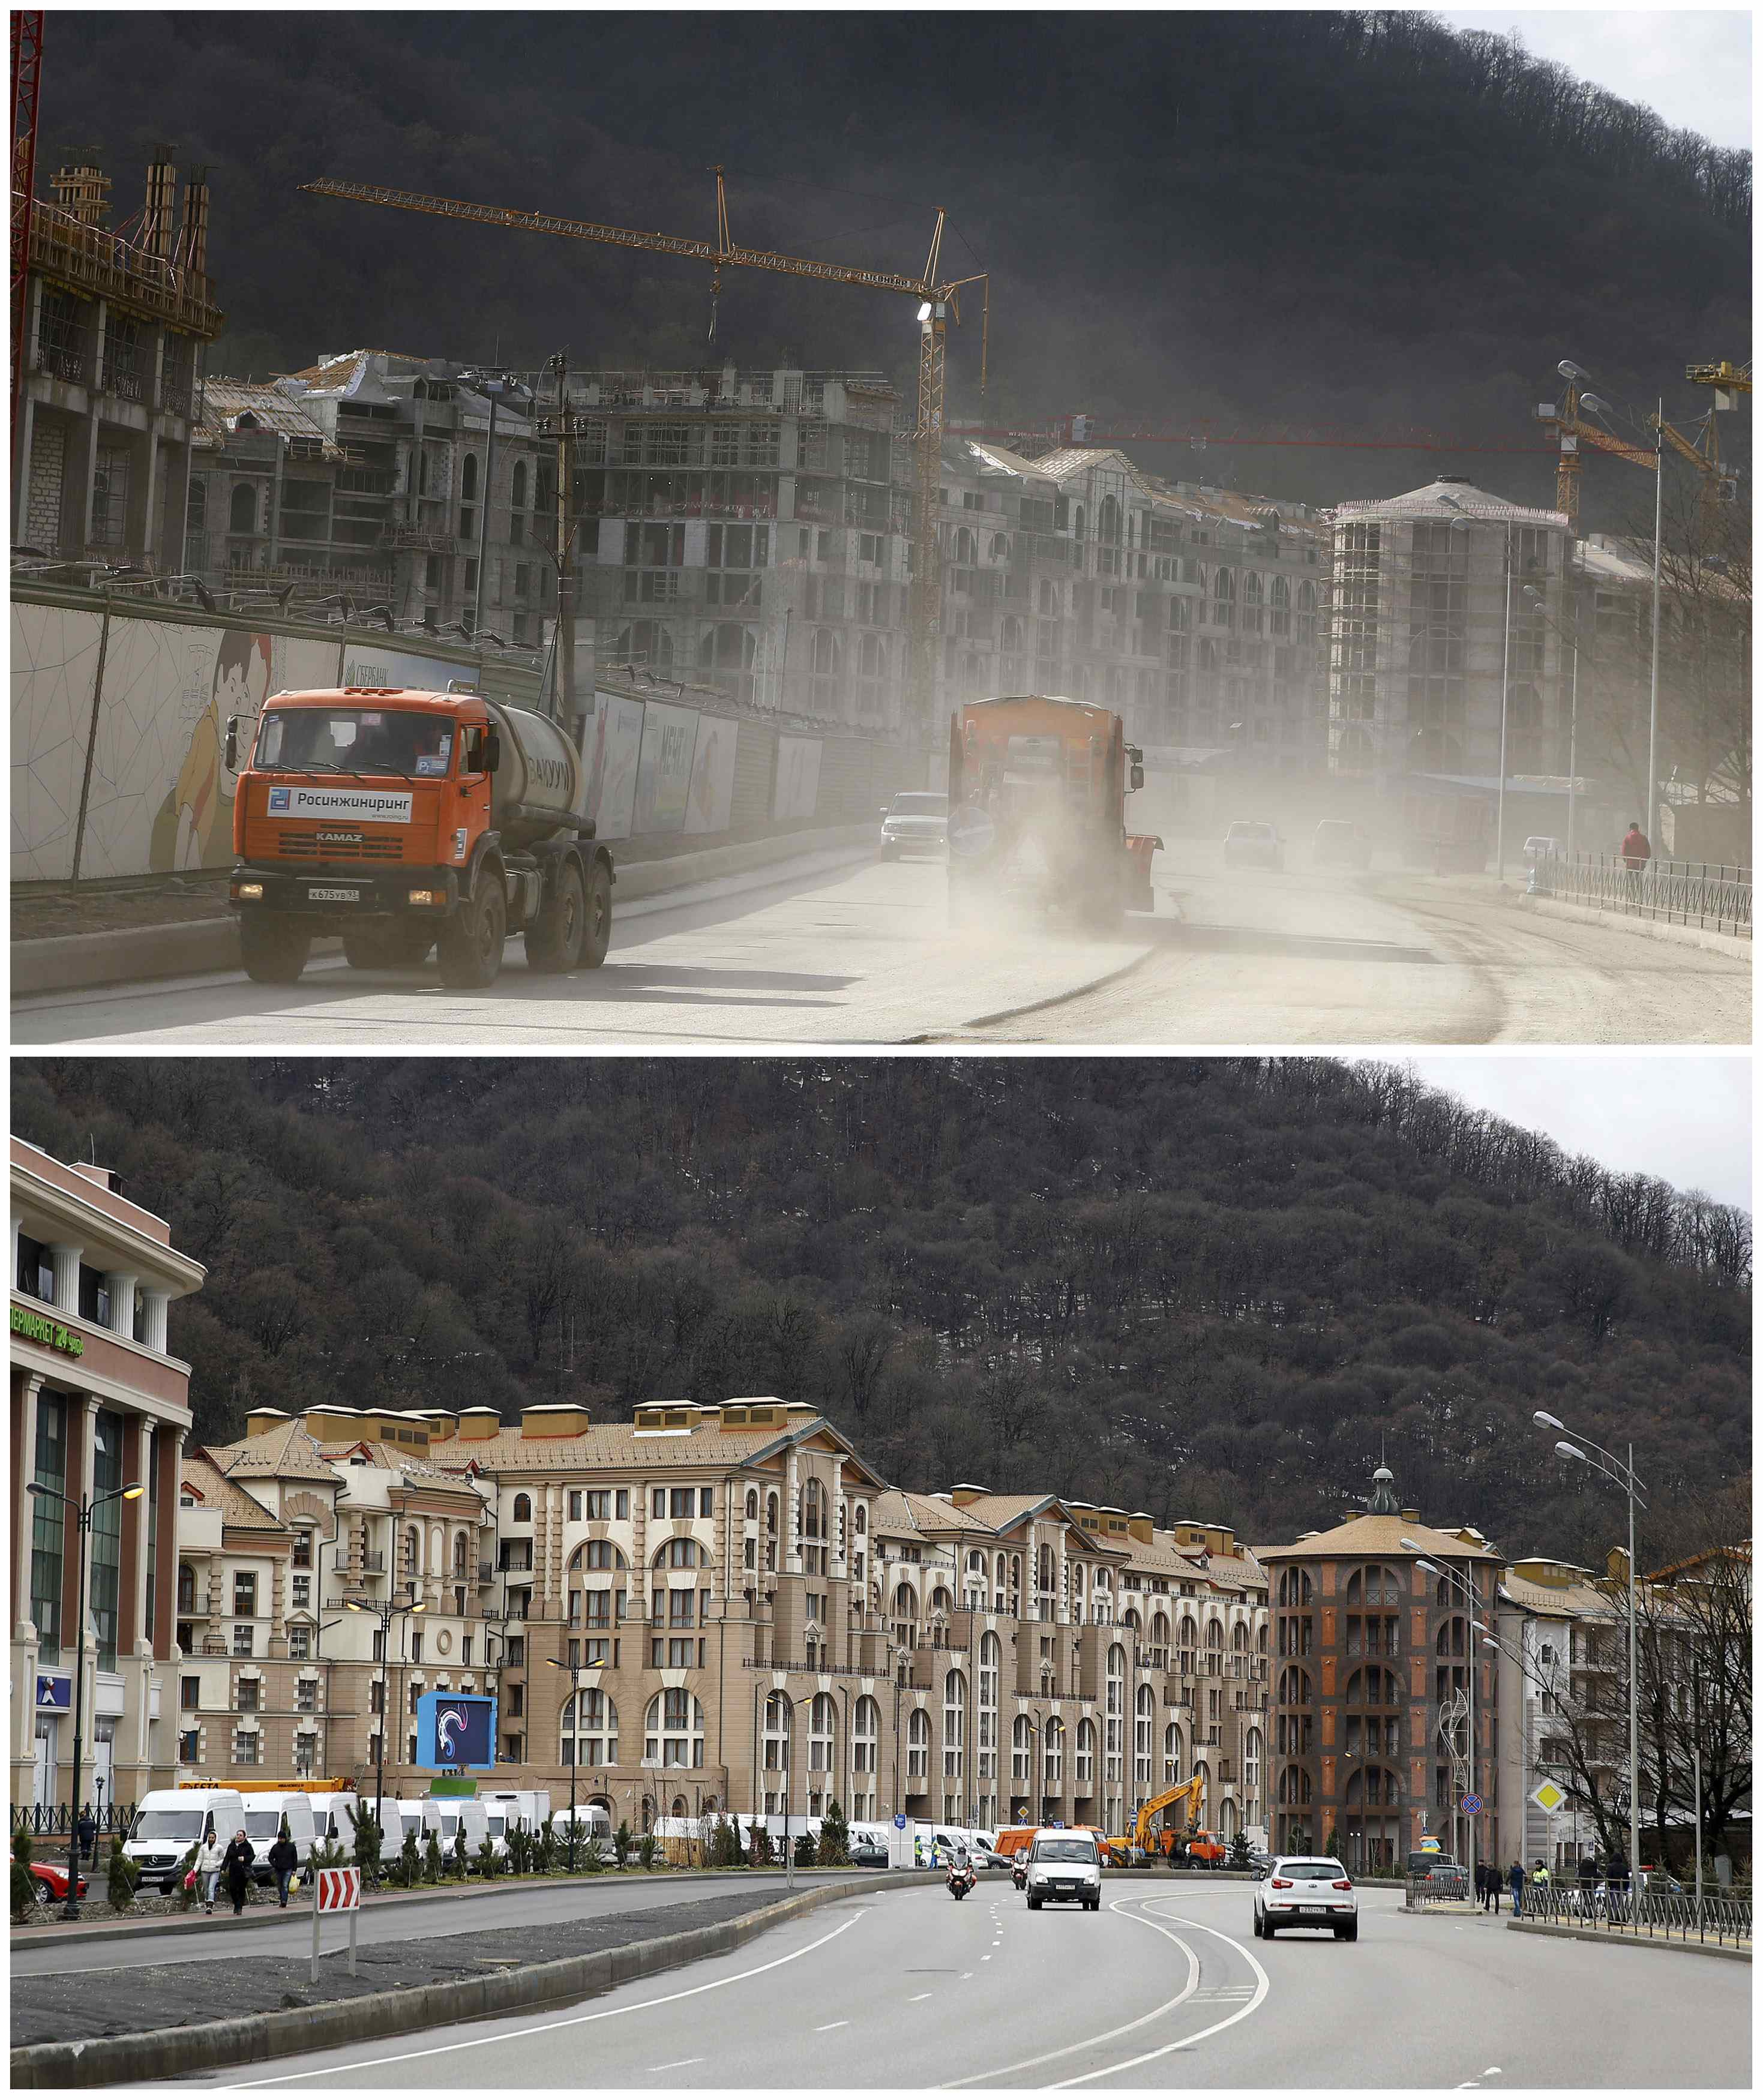 Sochi then and now: Preparing for the Olympics